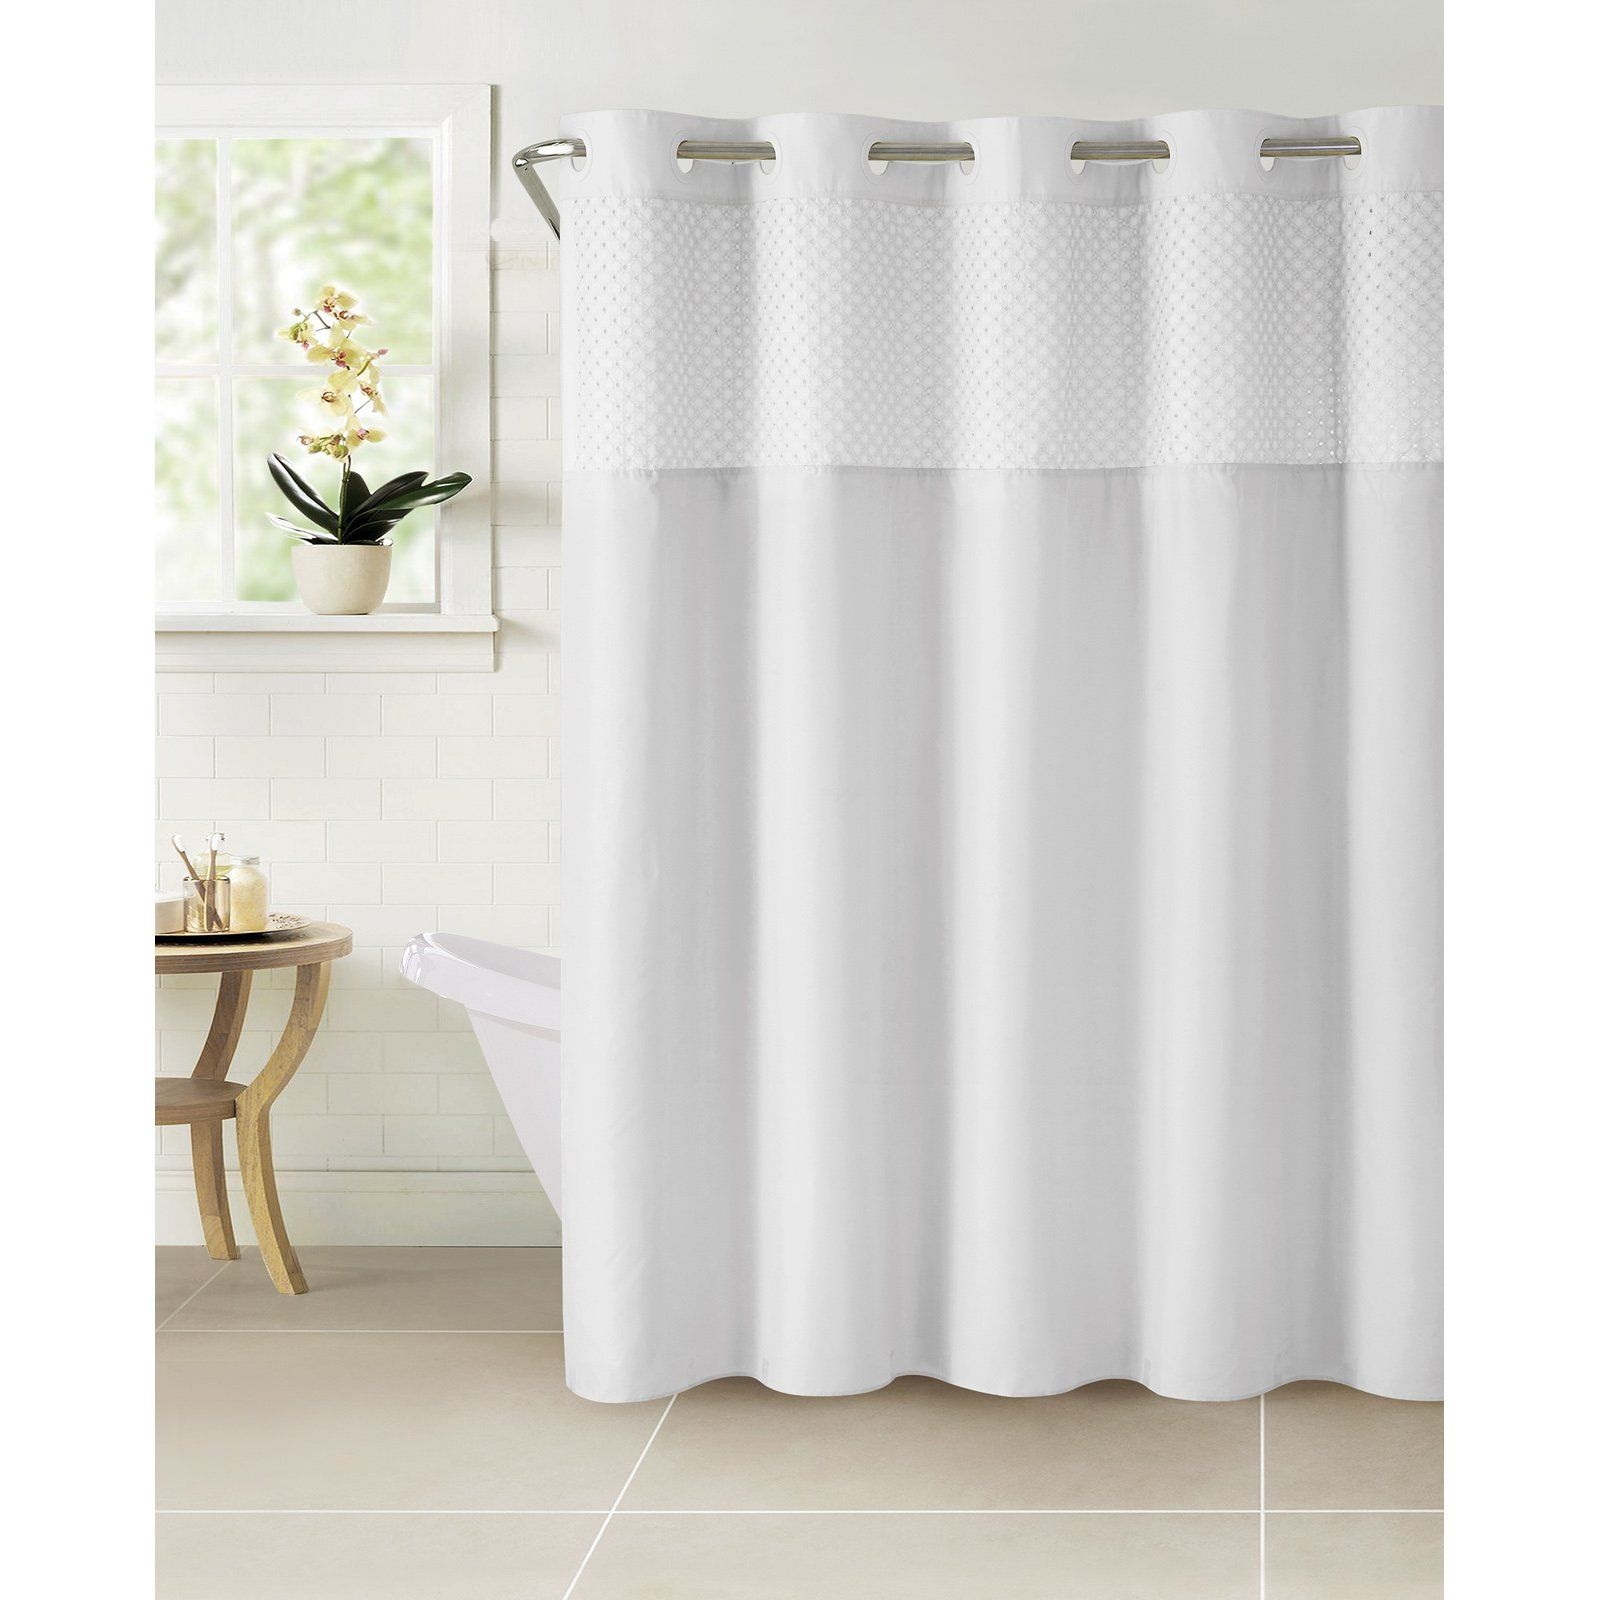 Hookless Bahamas Shower Curtain With Snap On Liner Shower